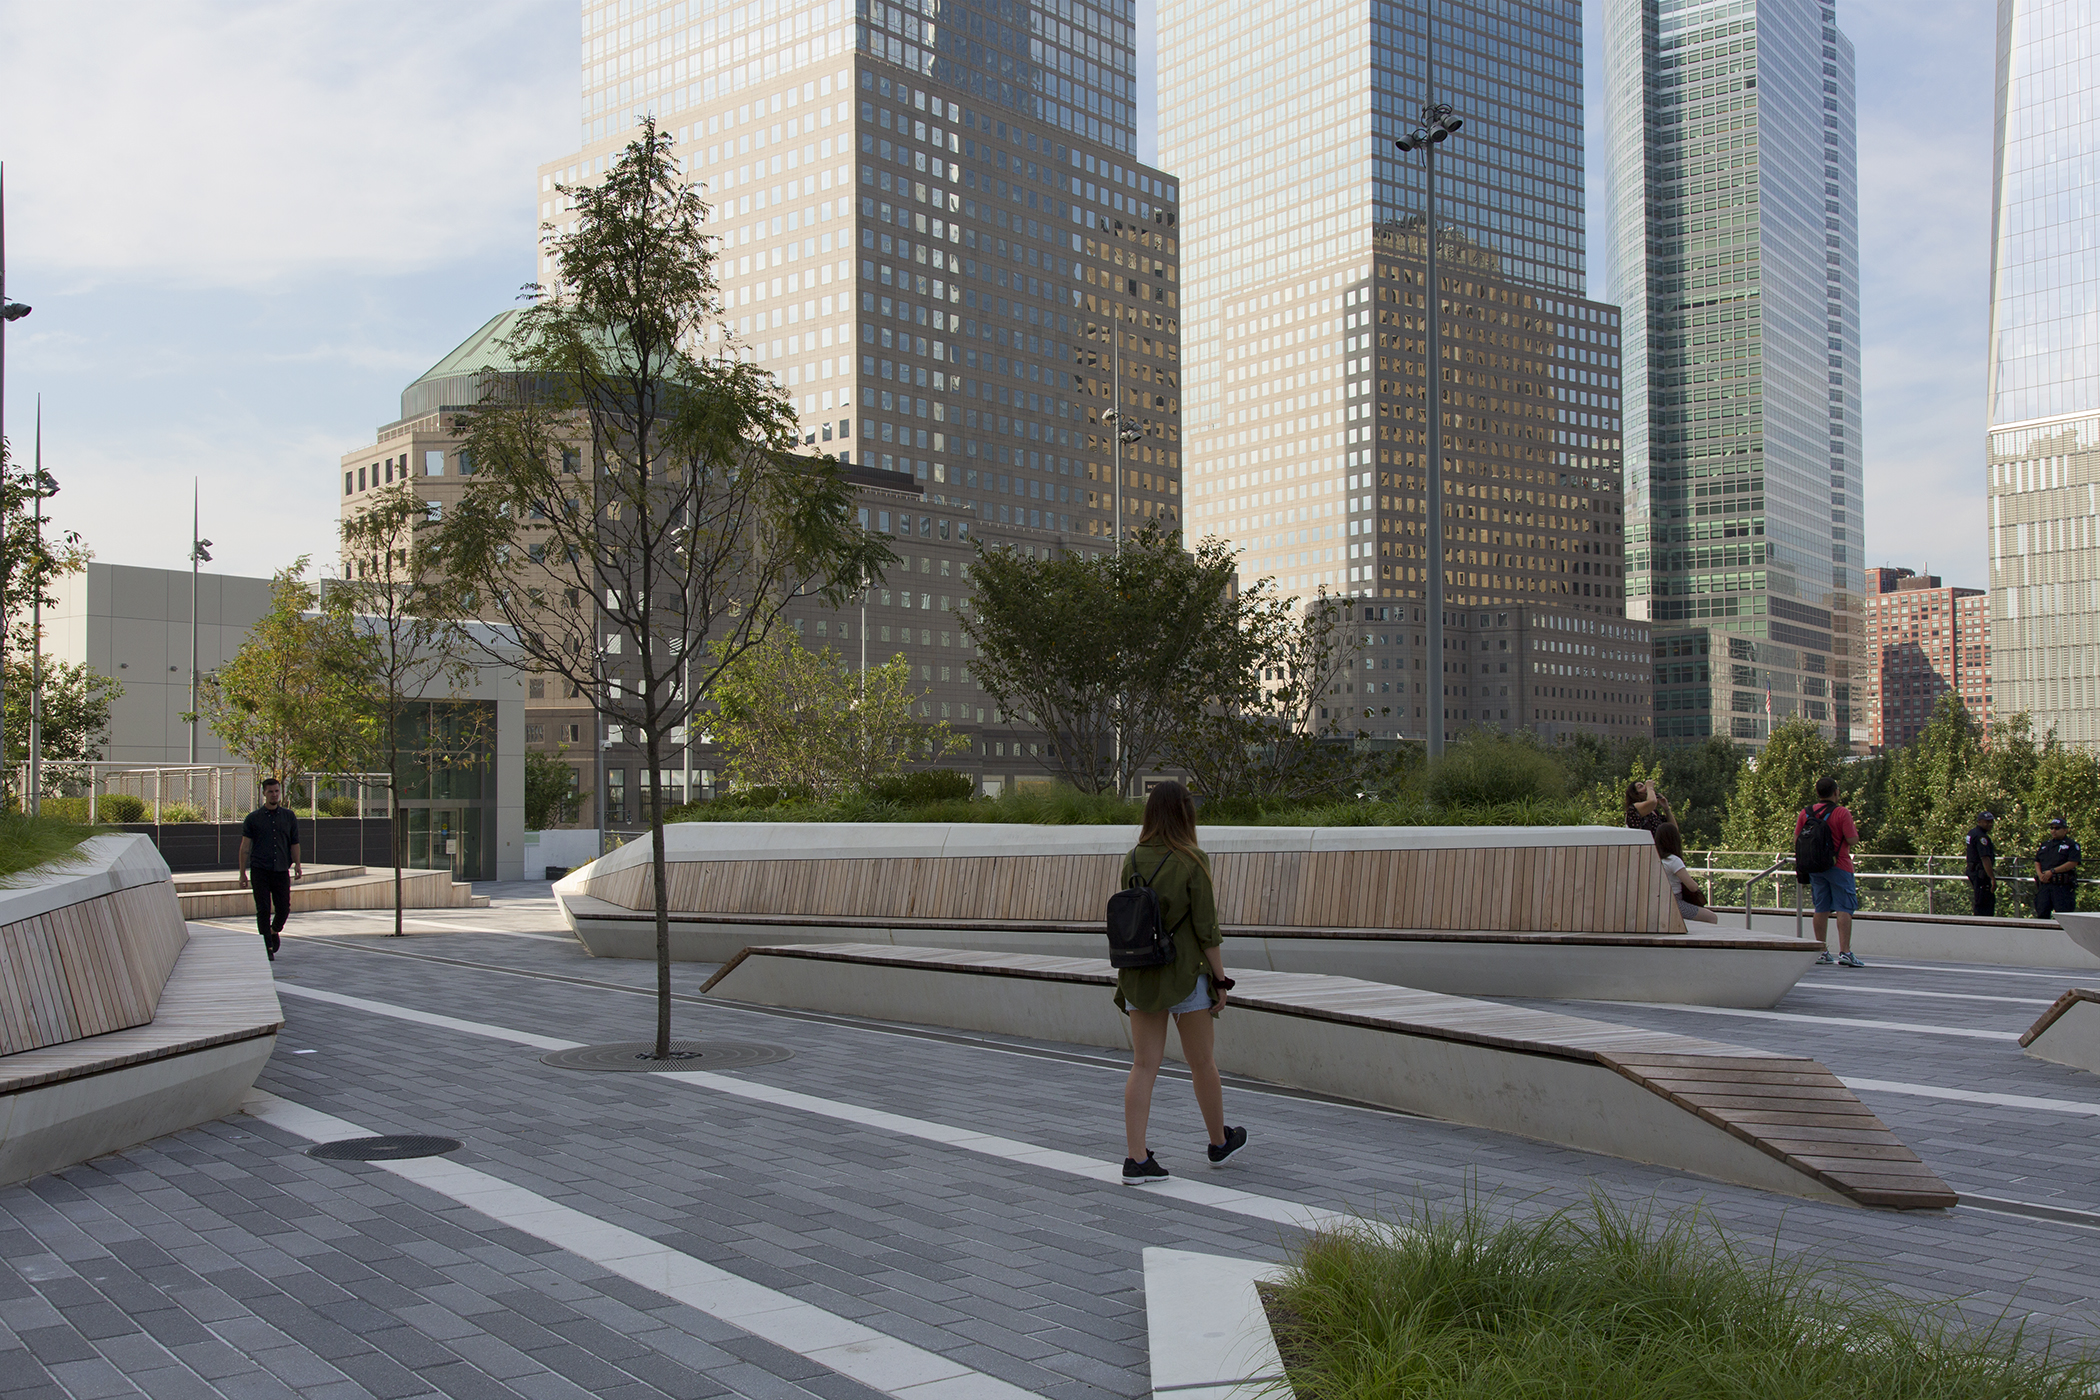 Liberty Park, an elevated park connected to Brookfield Place, overlooks the September 11 Memorial and Museum, New York.